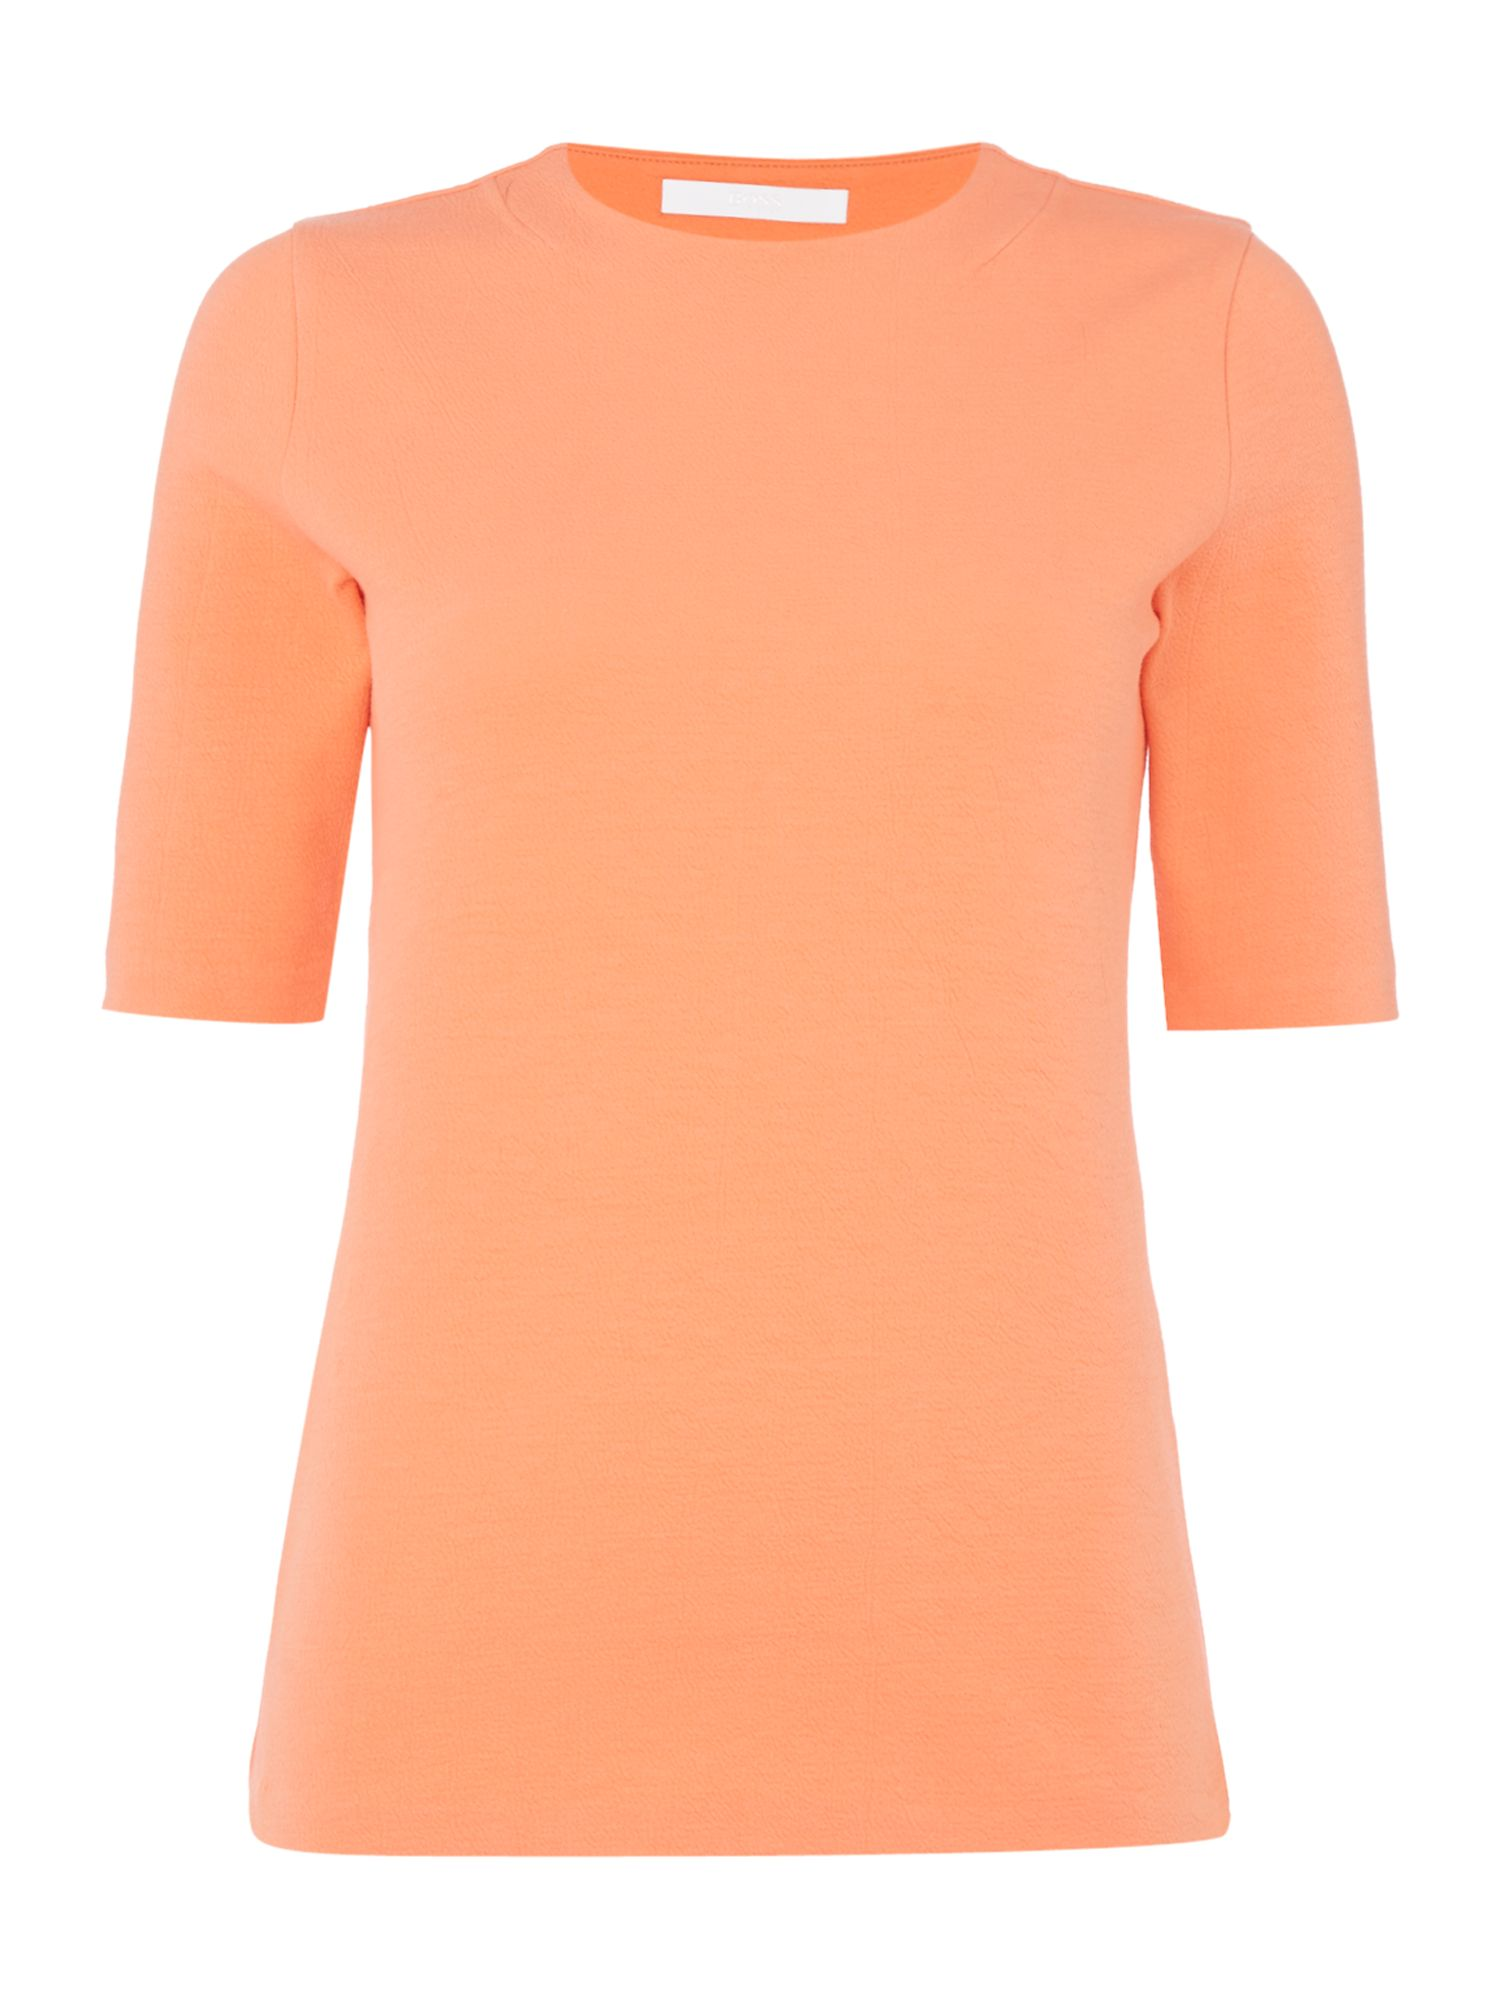 Hugo Boss Shortsleeve jersey top with crew neck, Red